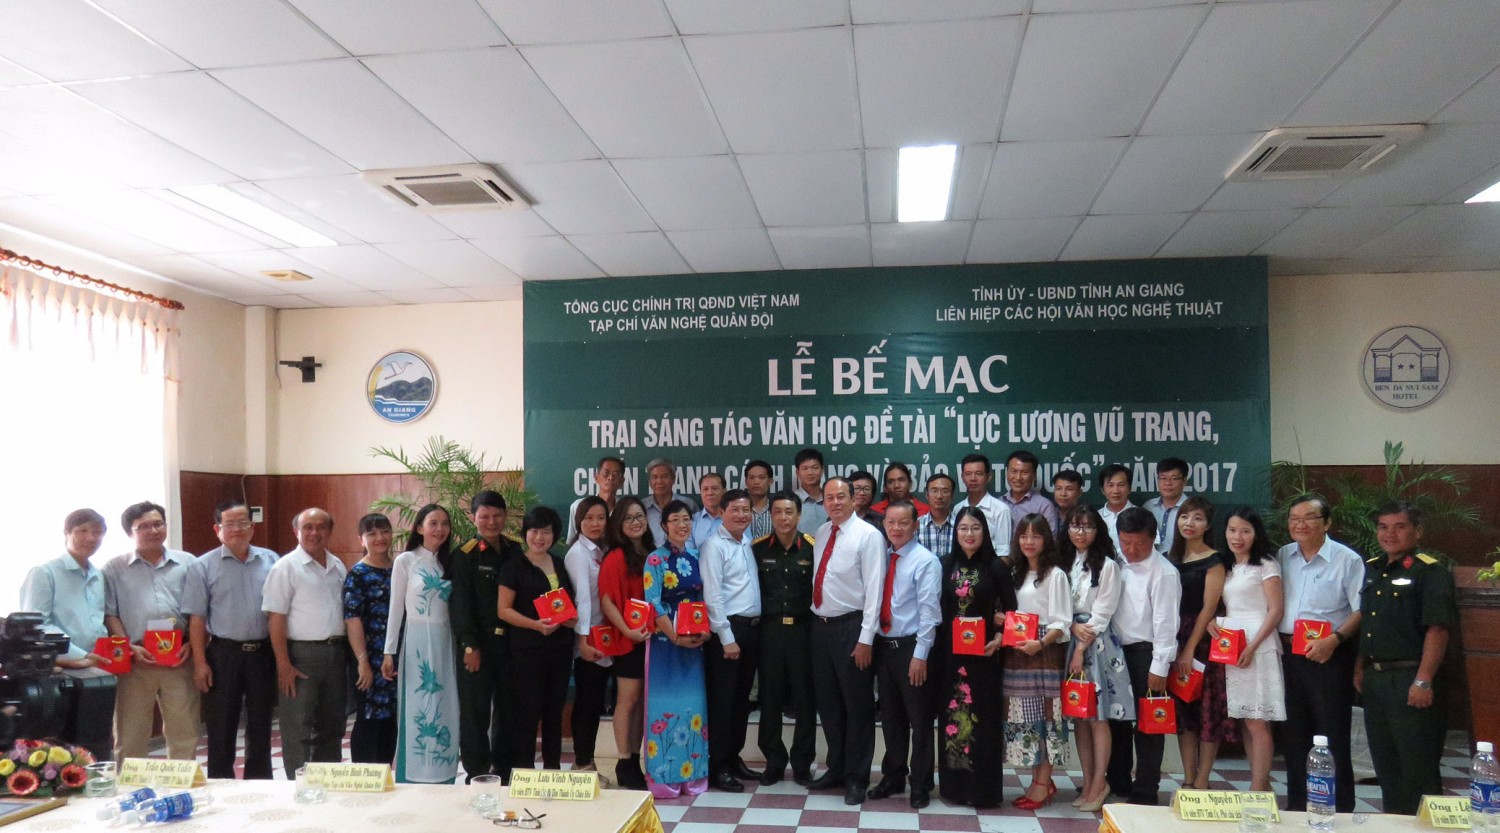 Closing Ceremony of 2017 An Giang Literary Creation Camp